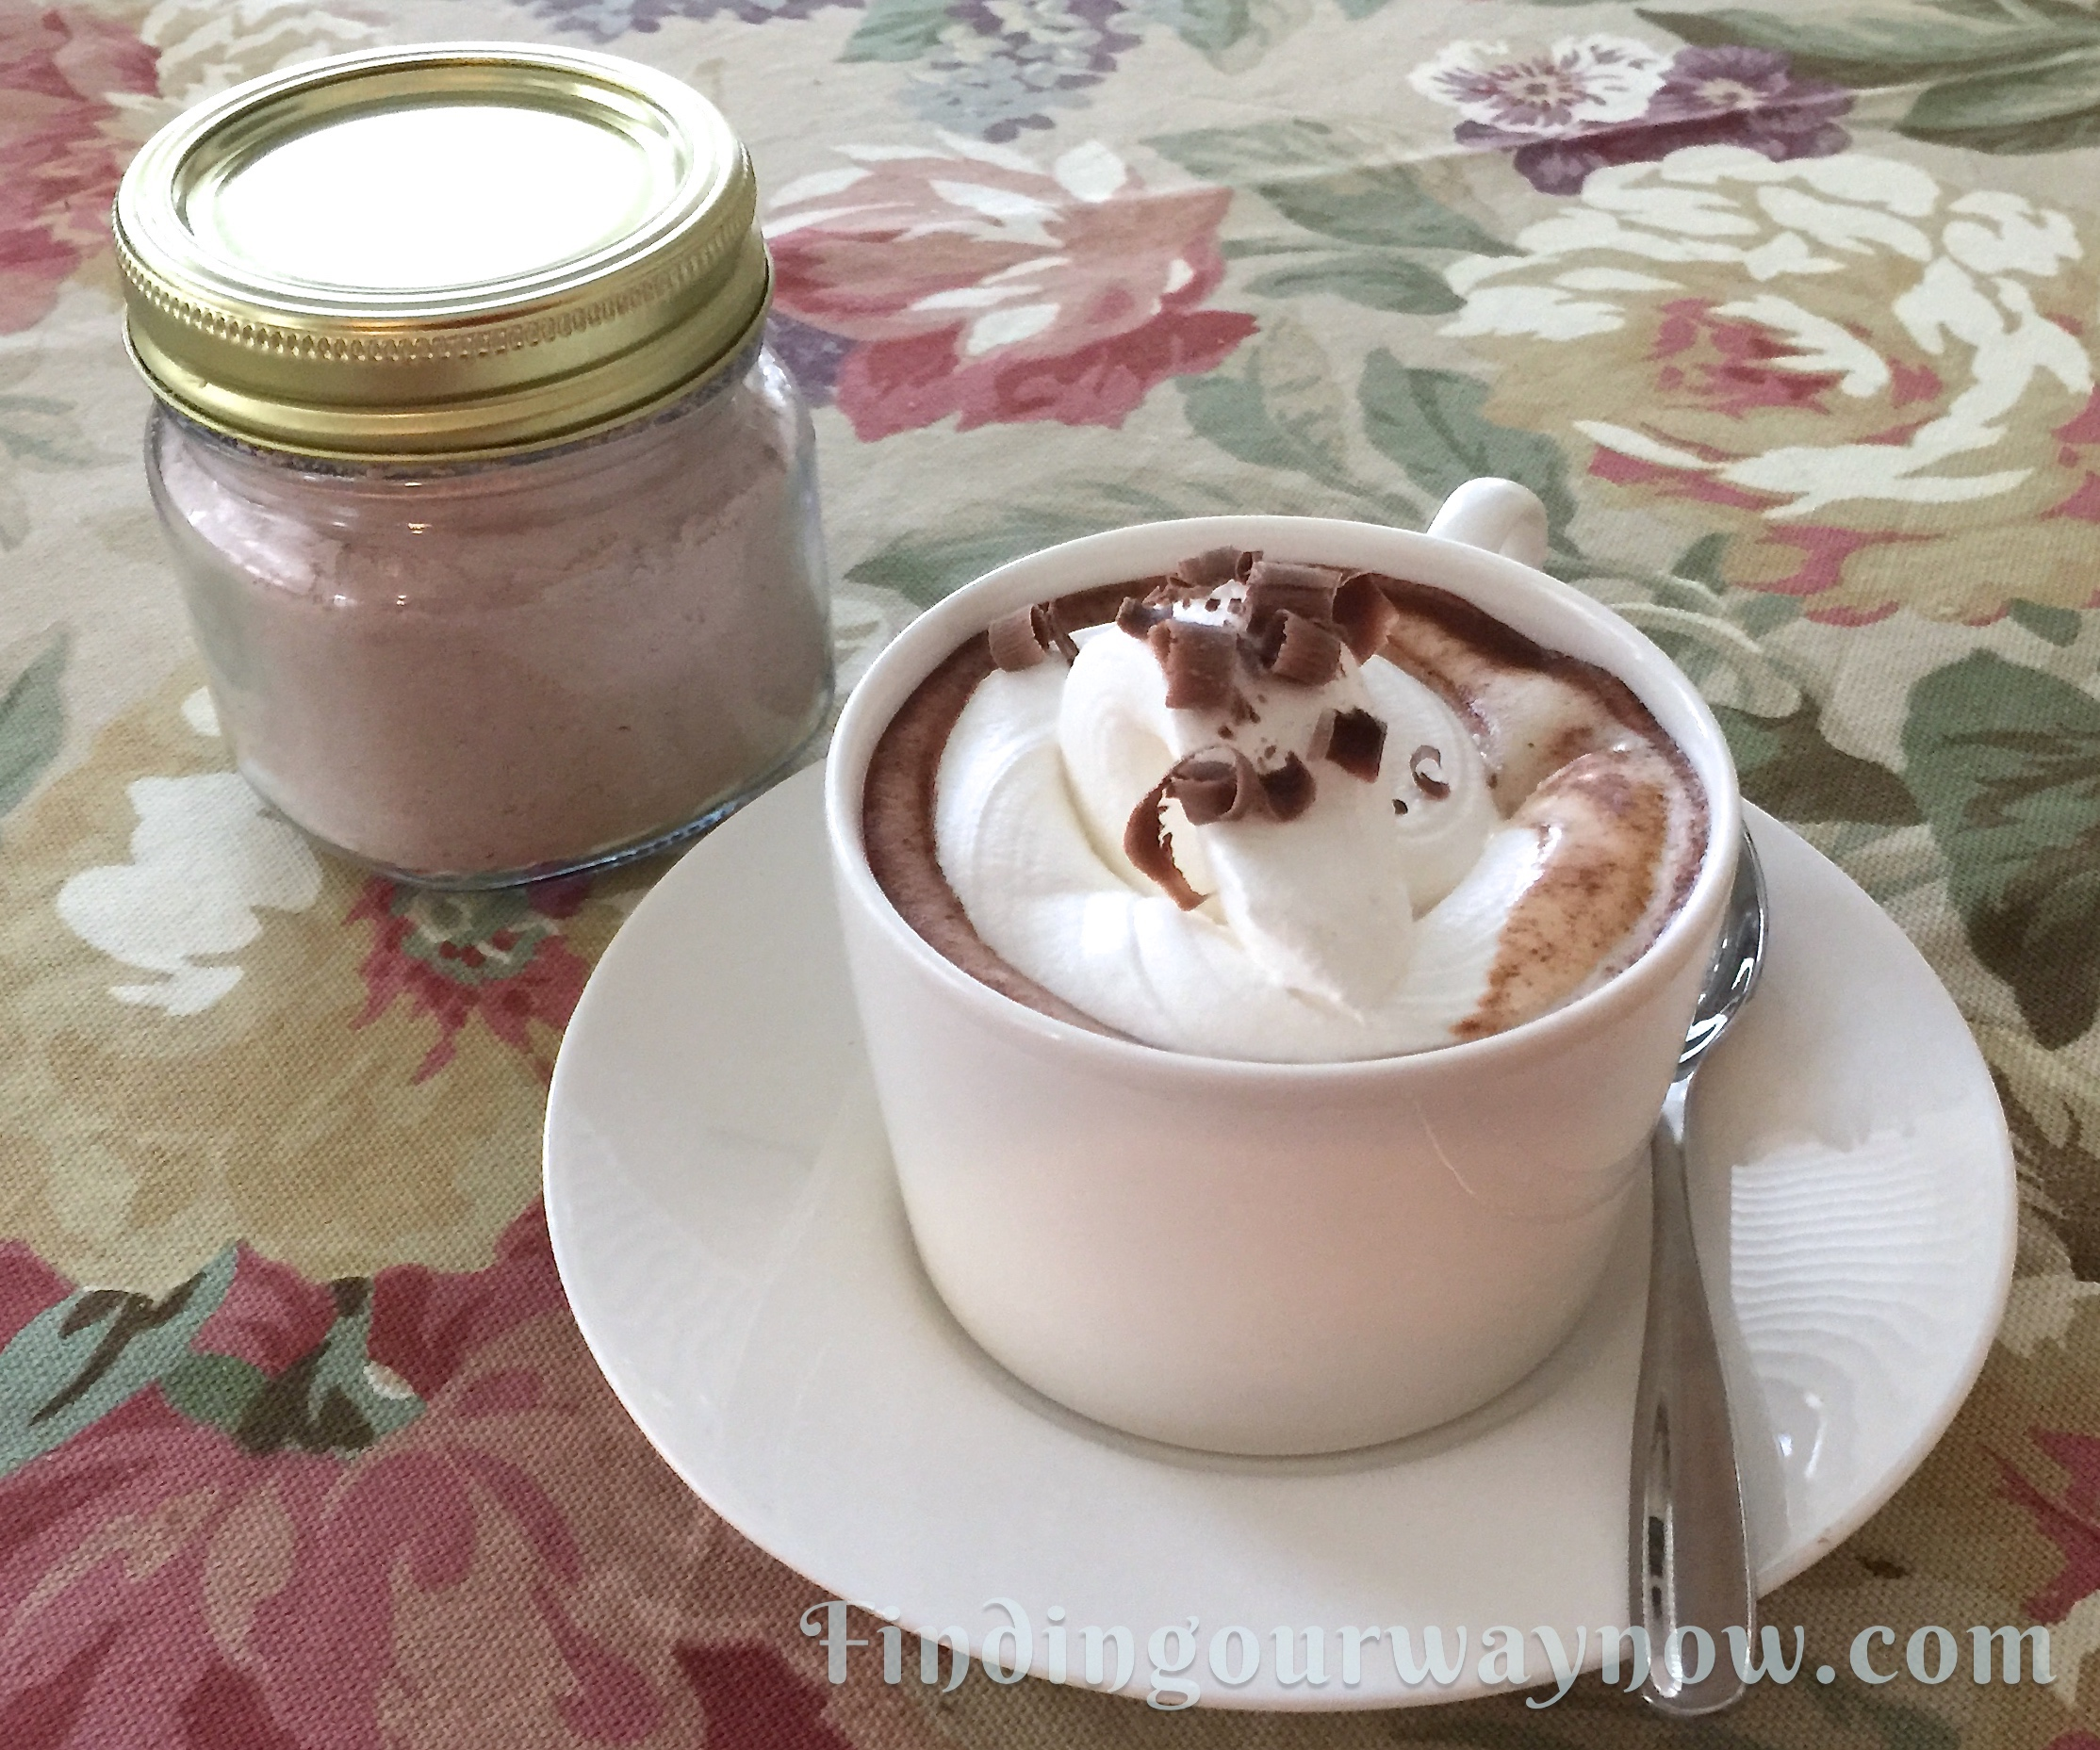 Homemade Spiced Cafe Mocha Mix, findingourwaynow.com